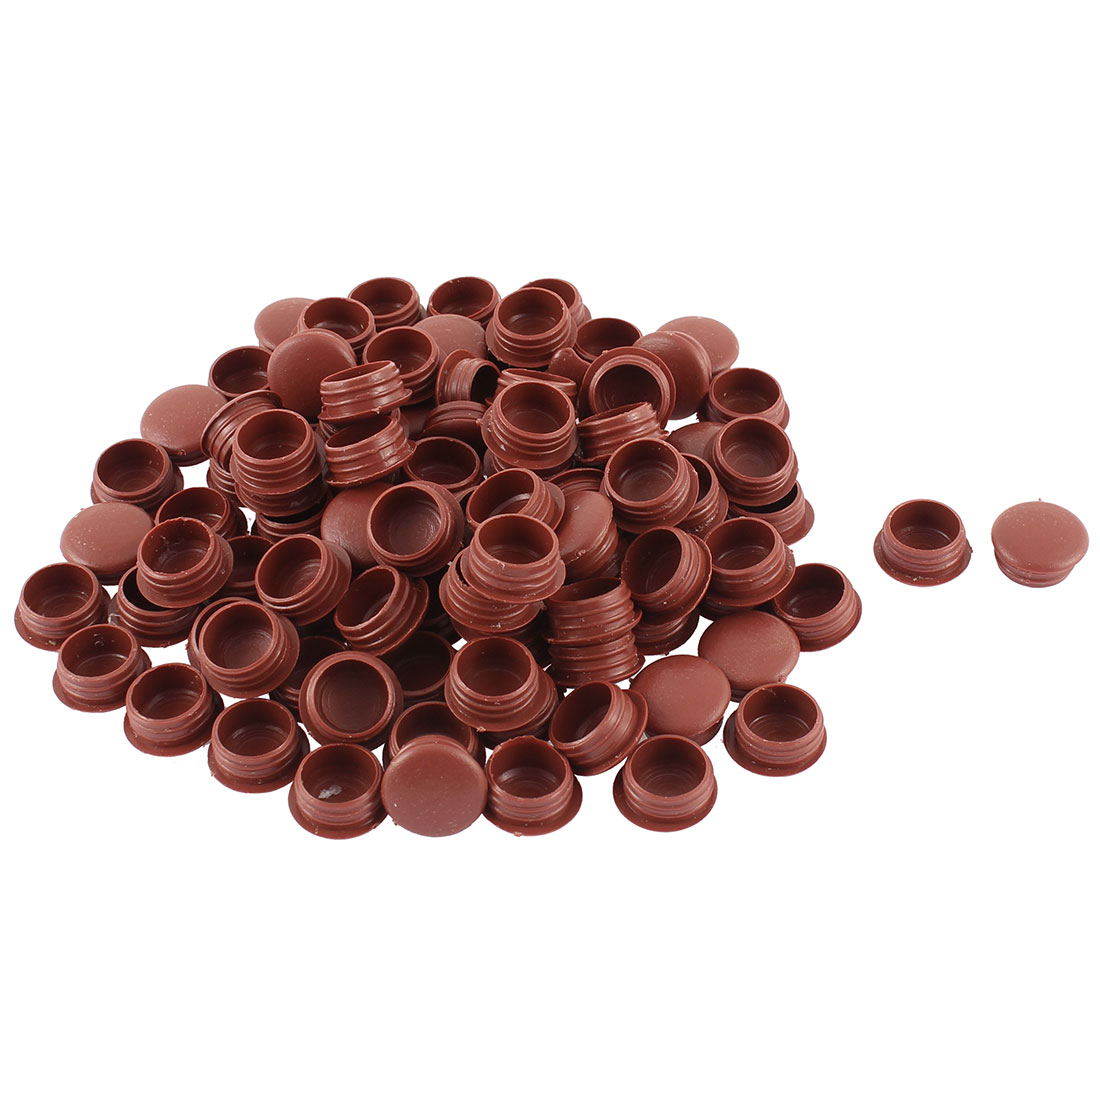 Plastic Hole End Cap Cover Pipe Tube Inserts Burgundy 18mm Dia Head 100pcs - image 1 of 1